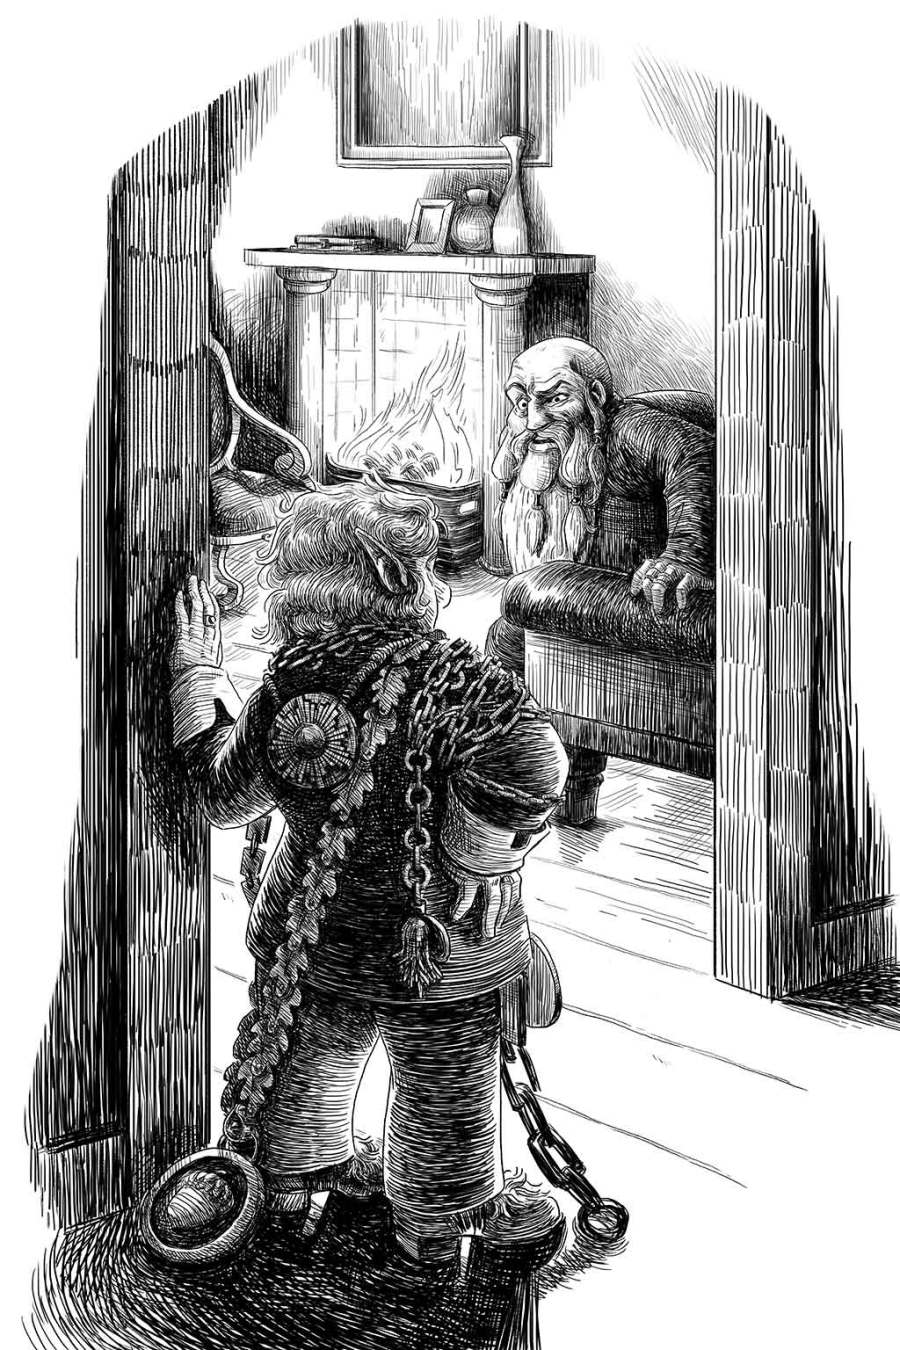 An illustration of Fenrir Goldson looking at Bolbi Baggs draped in chains and medallions